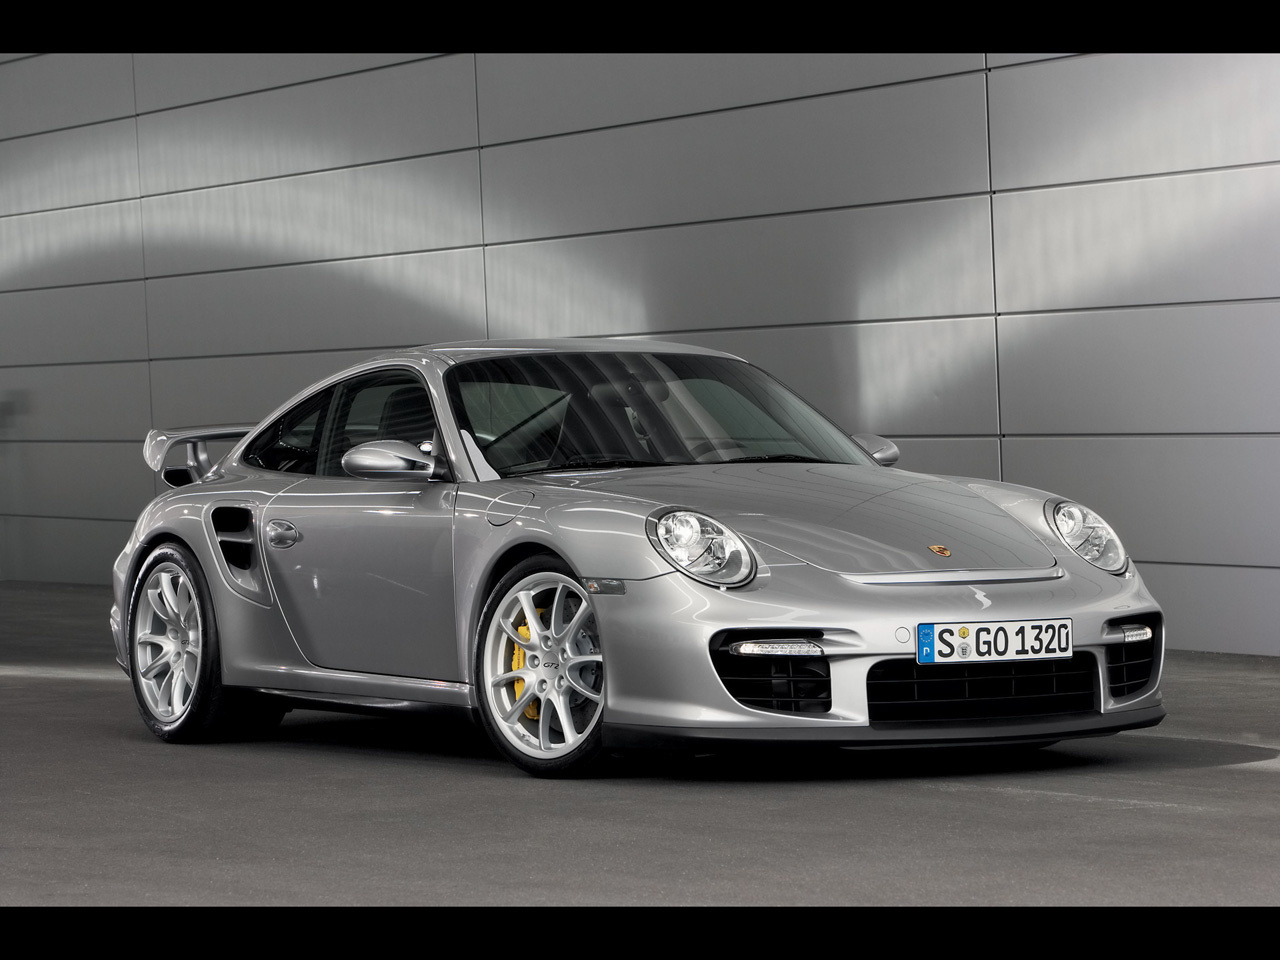 Picture of 2008 porsche 911 exterior gallery_worthy